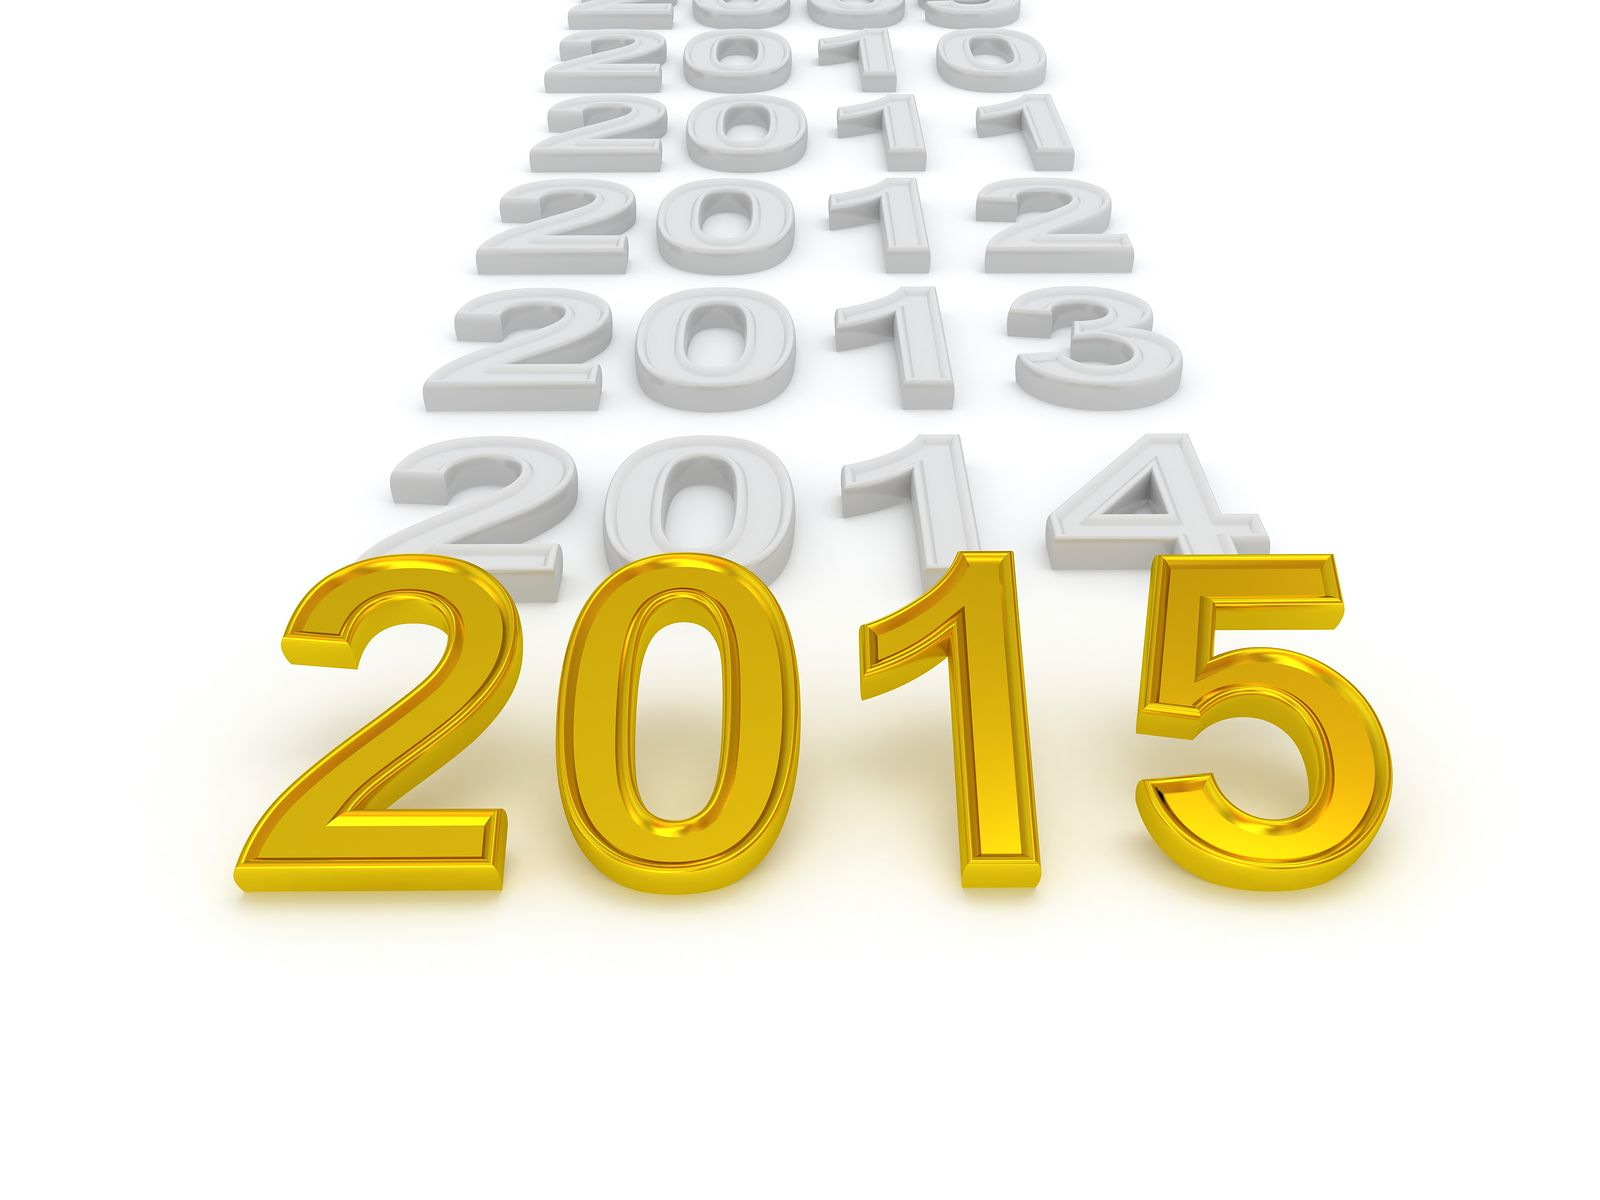 Happy new year 2015 greeting cards memes pictures school ideas happy new year 2015 greeting cards memes pictures kristyandbryce Image collections